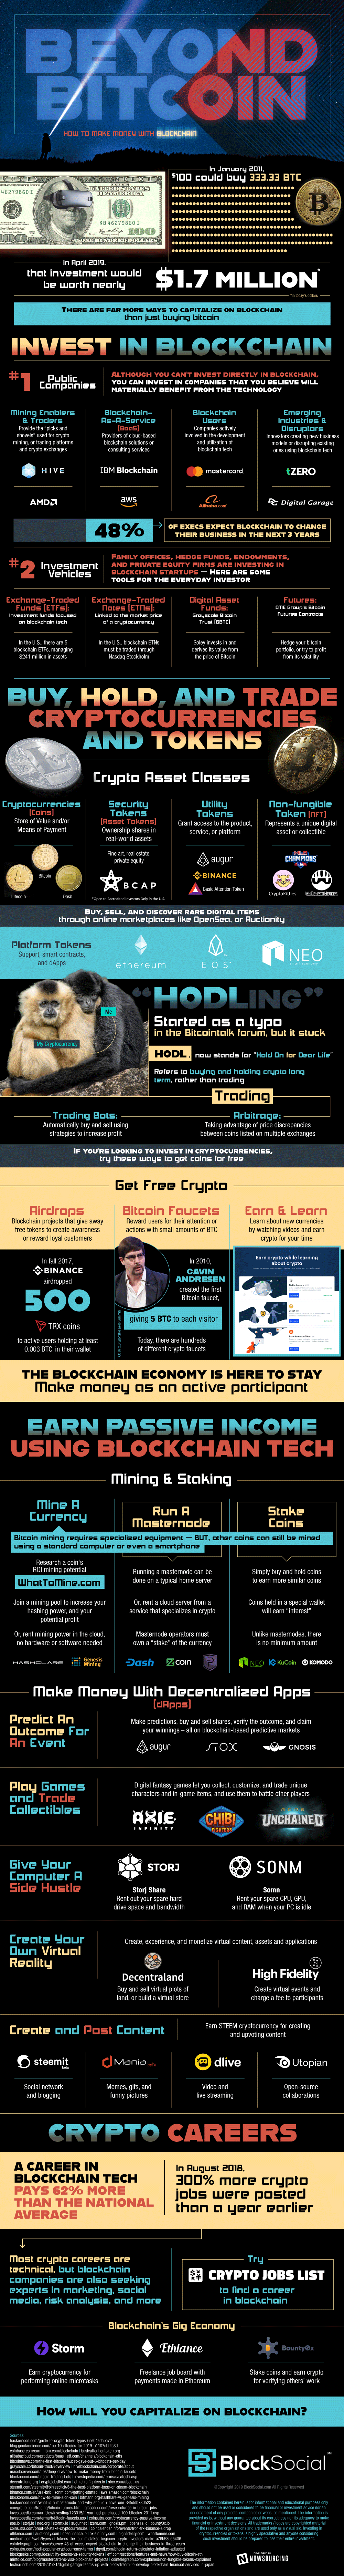 Learning to Capitalize on the Blockchain [Infographic]